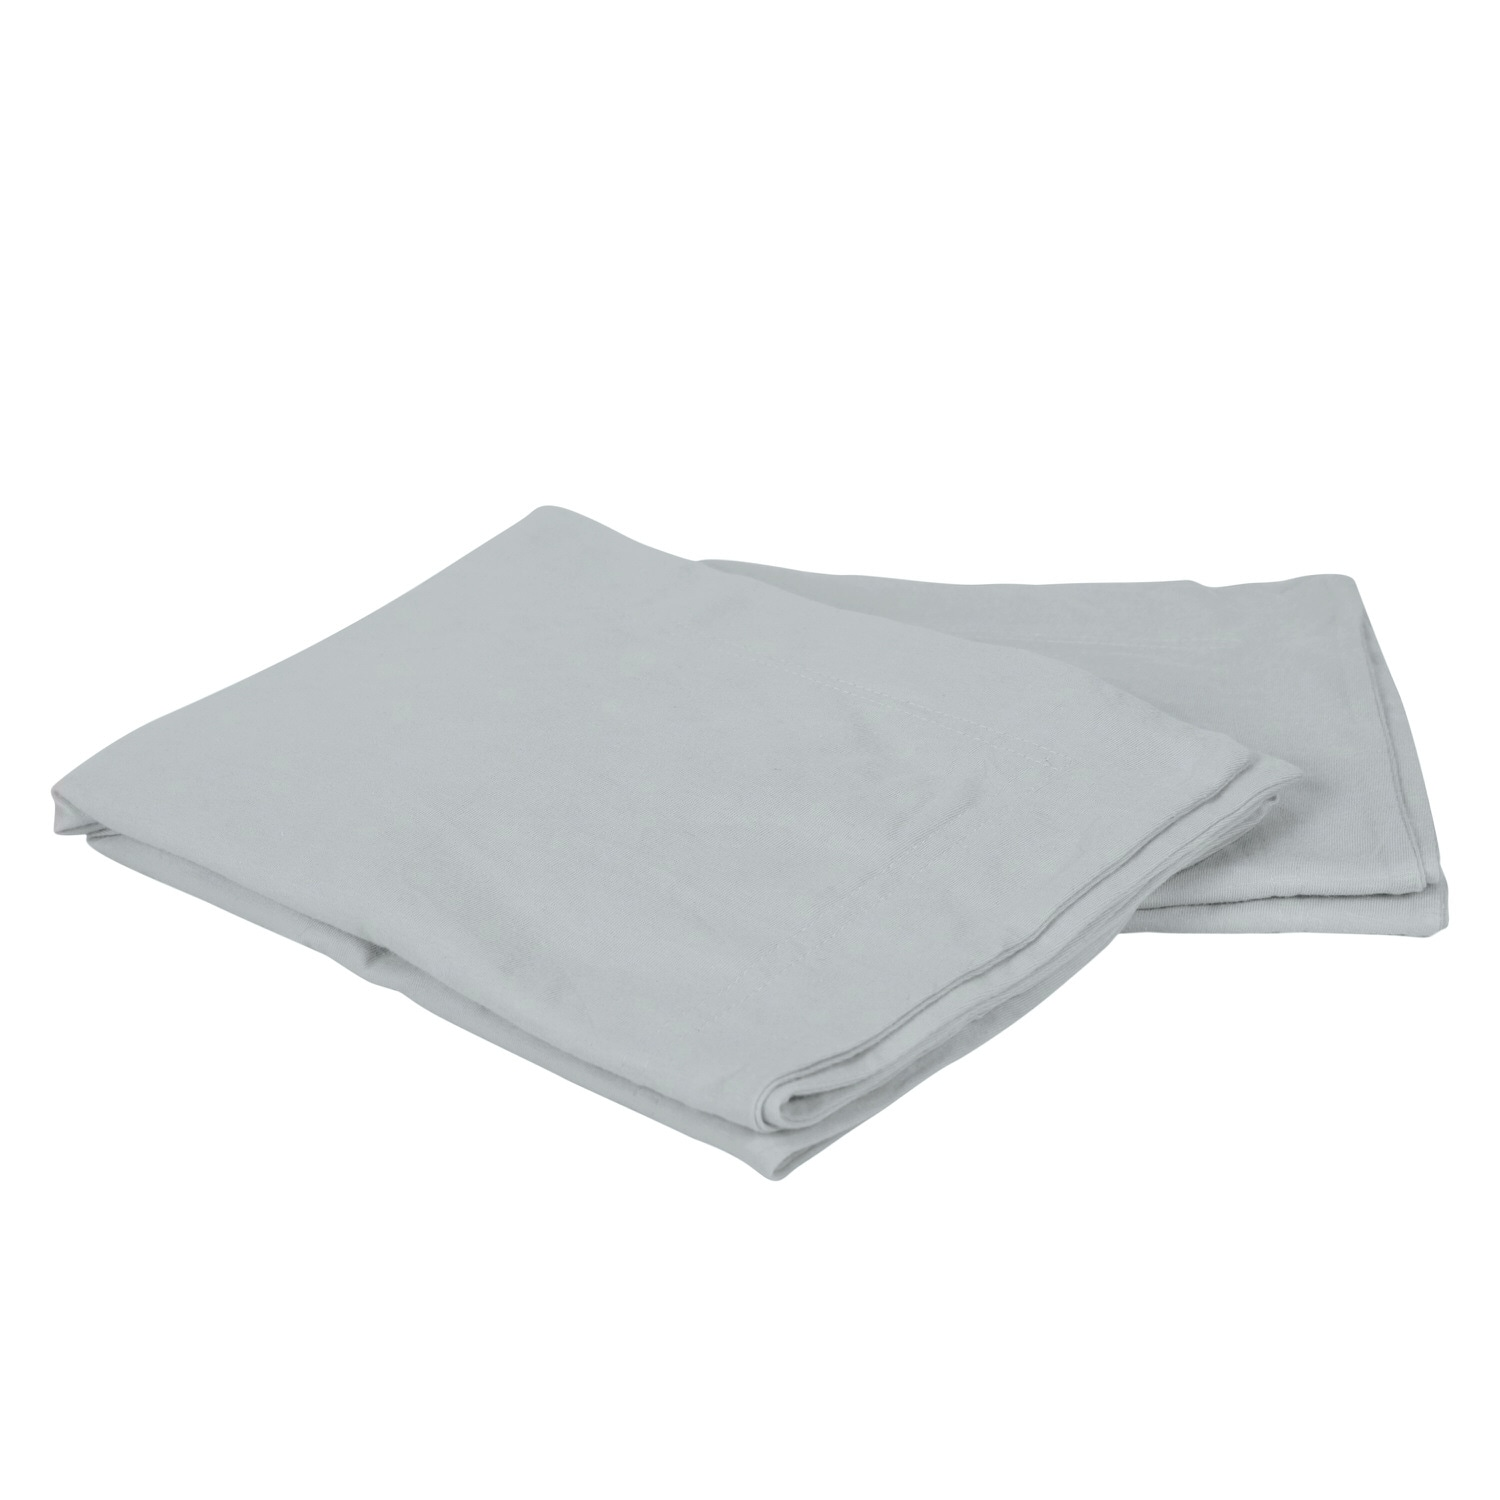 100% Premium Combed Cotton Jersey Silver Fitted Pillow Case Set With Aloe Vera Treatment